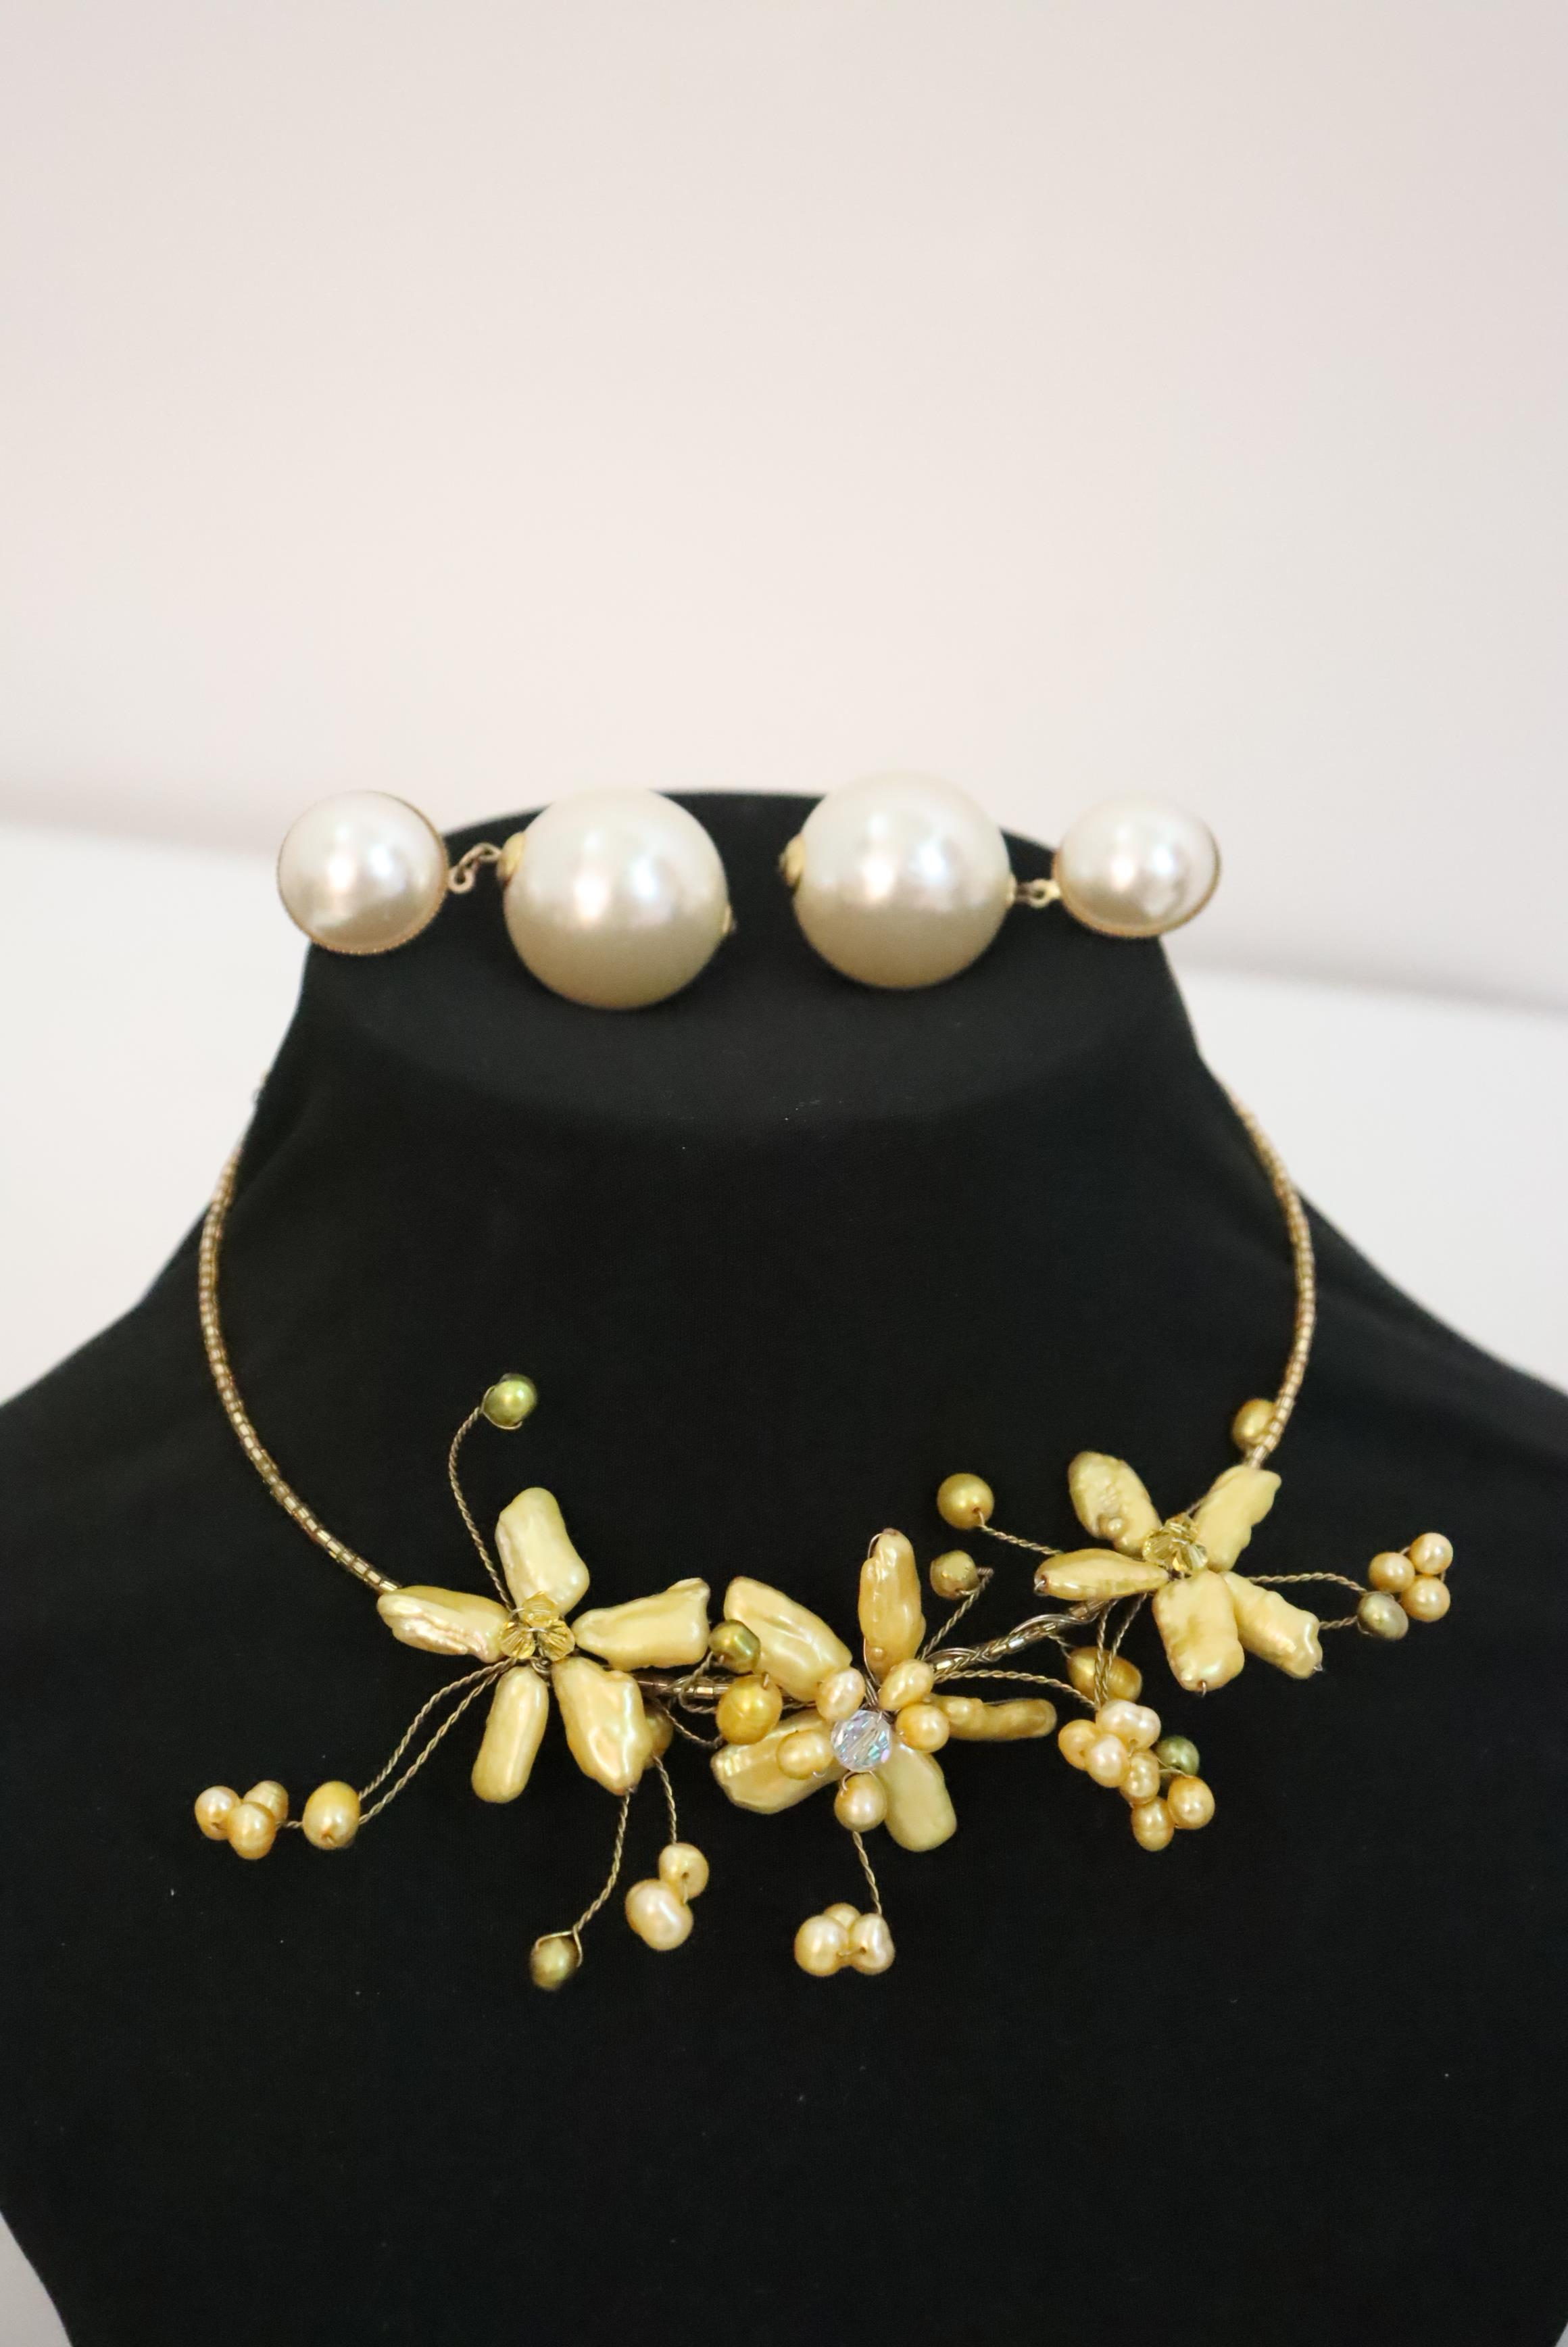 Large Collection of Ladies Jewelry, 34 Pieces - Image 3 of 18